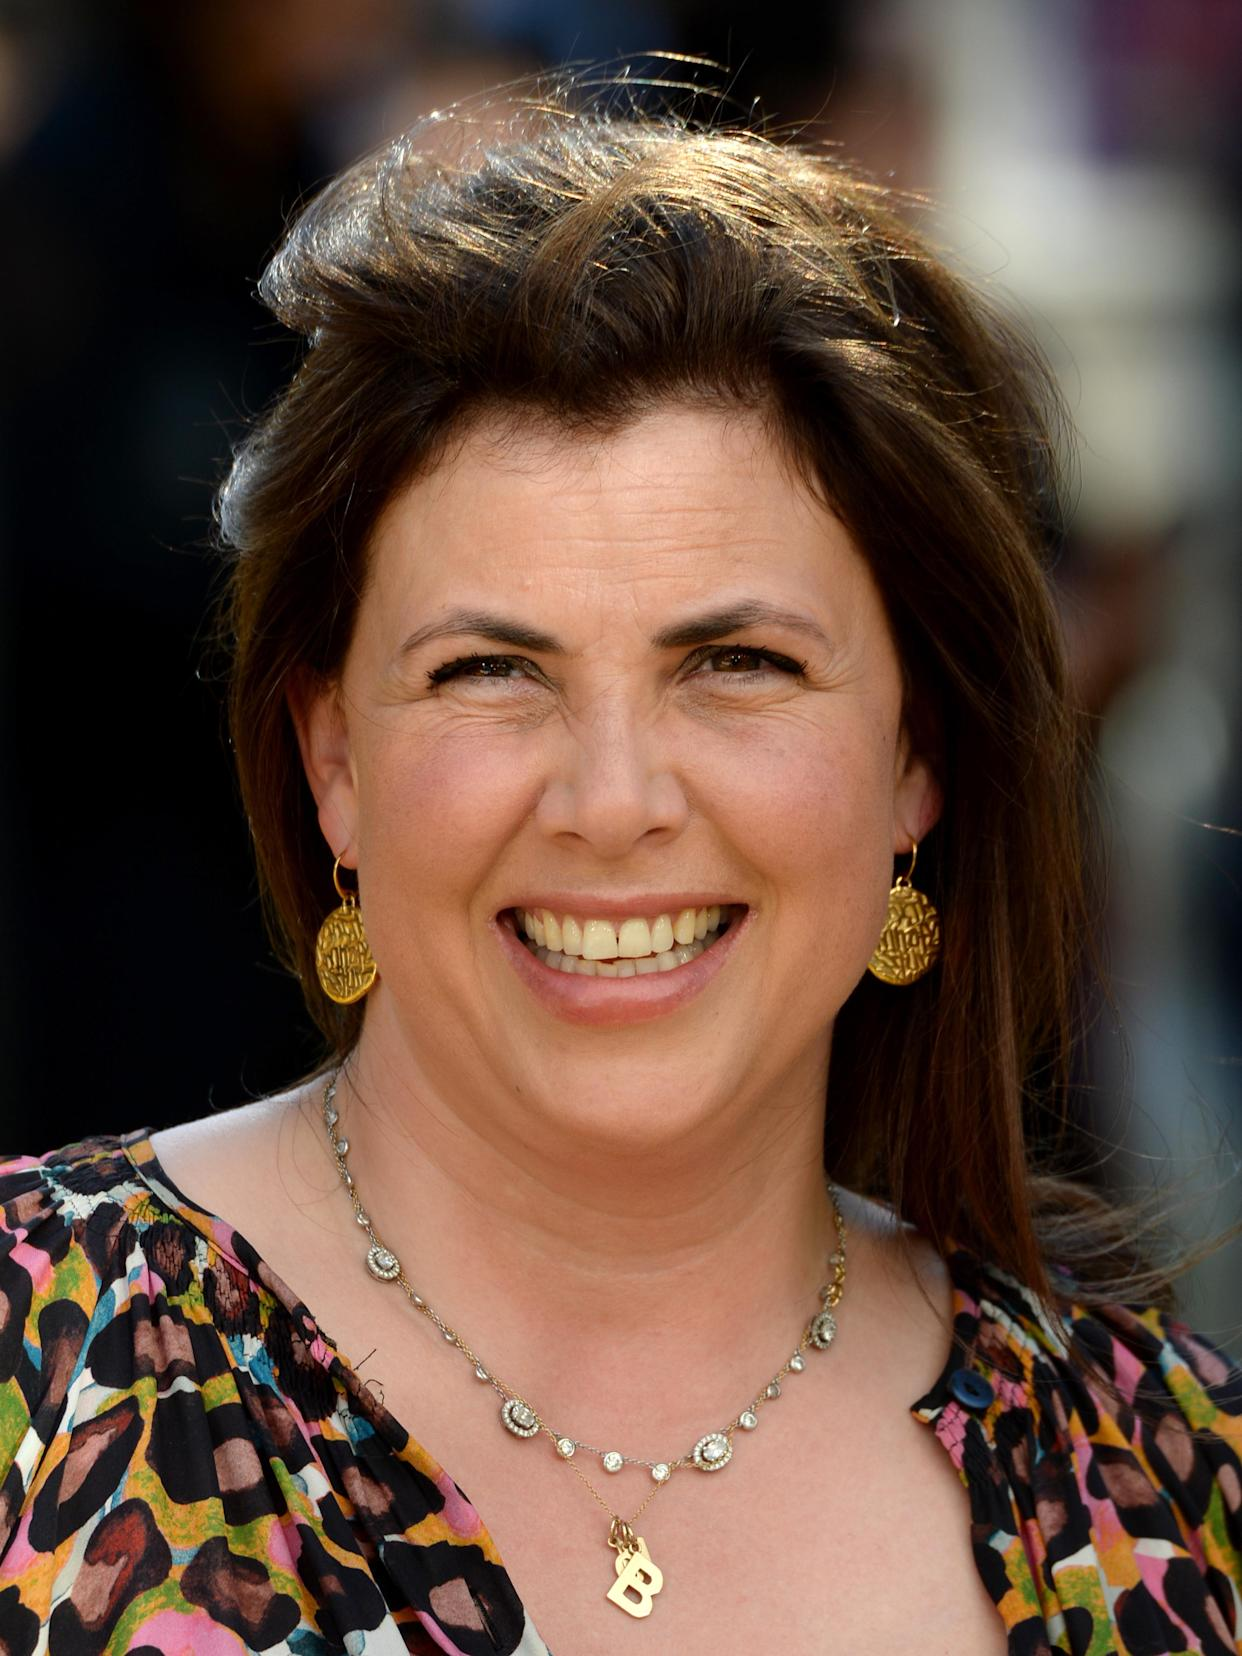 Kirstie Allsopp attending the Minions UK Film Premiere held at the Odeon cinema Leicester Square, London  (Mandatory Credit: DOUG PETERS/ EMPICS Entertainment)